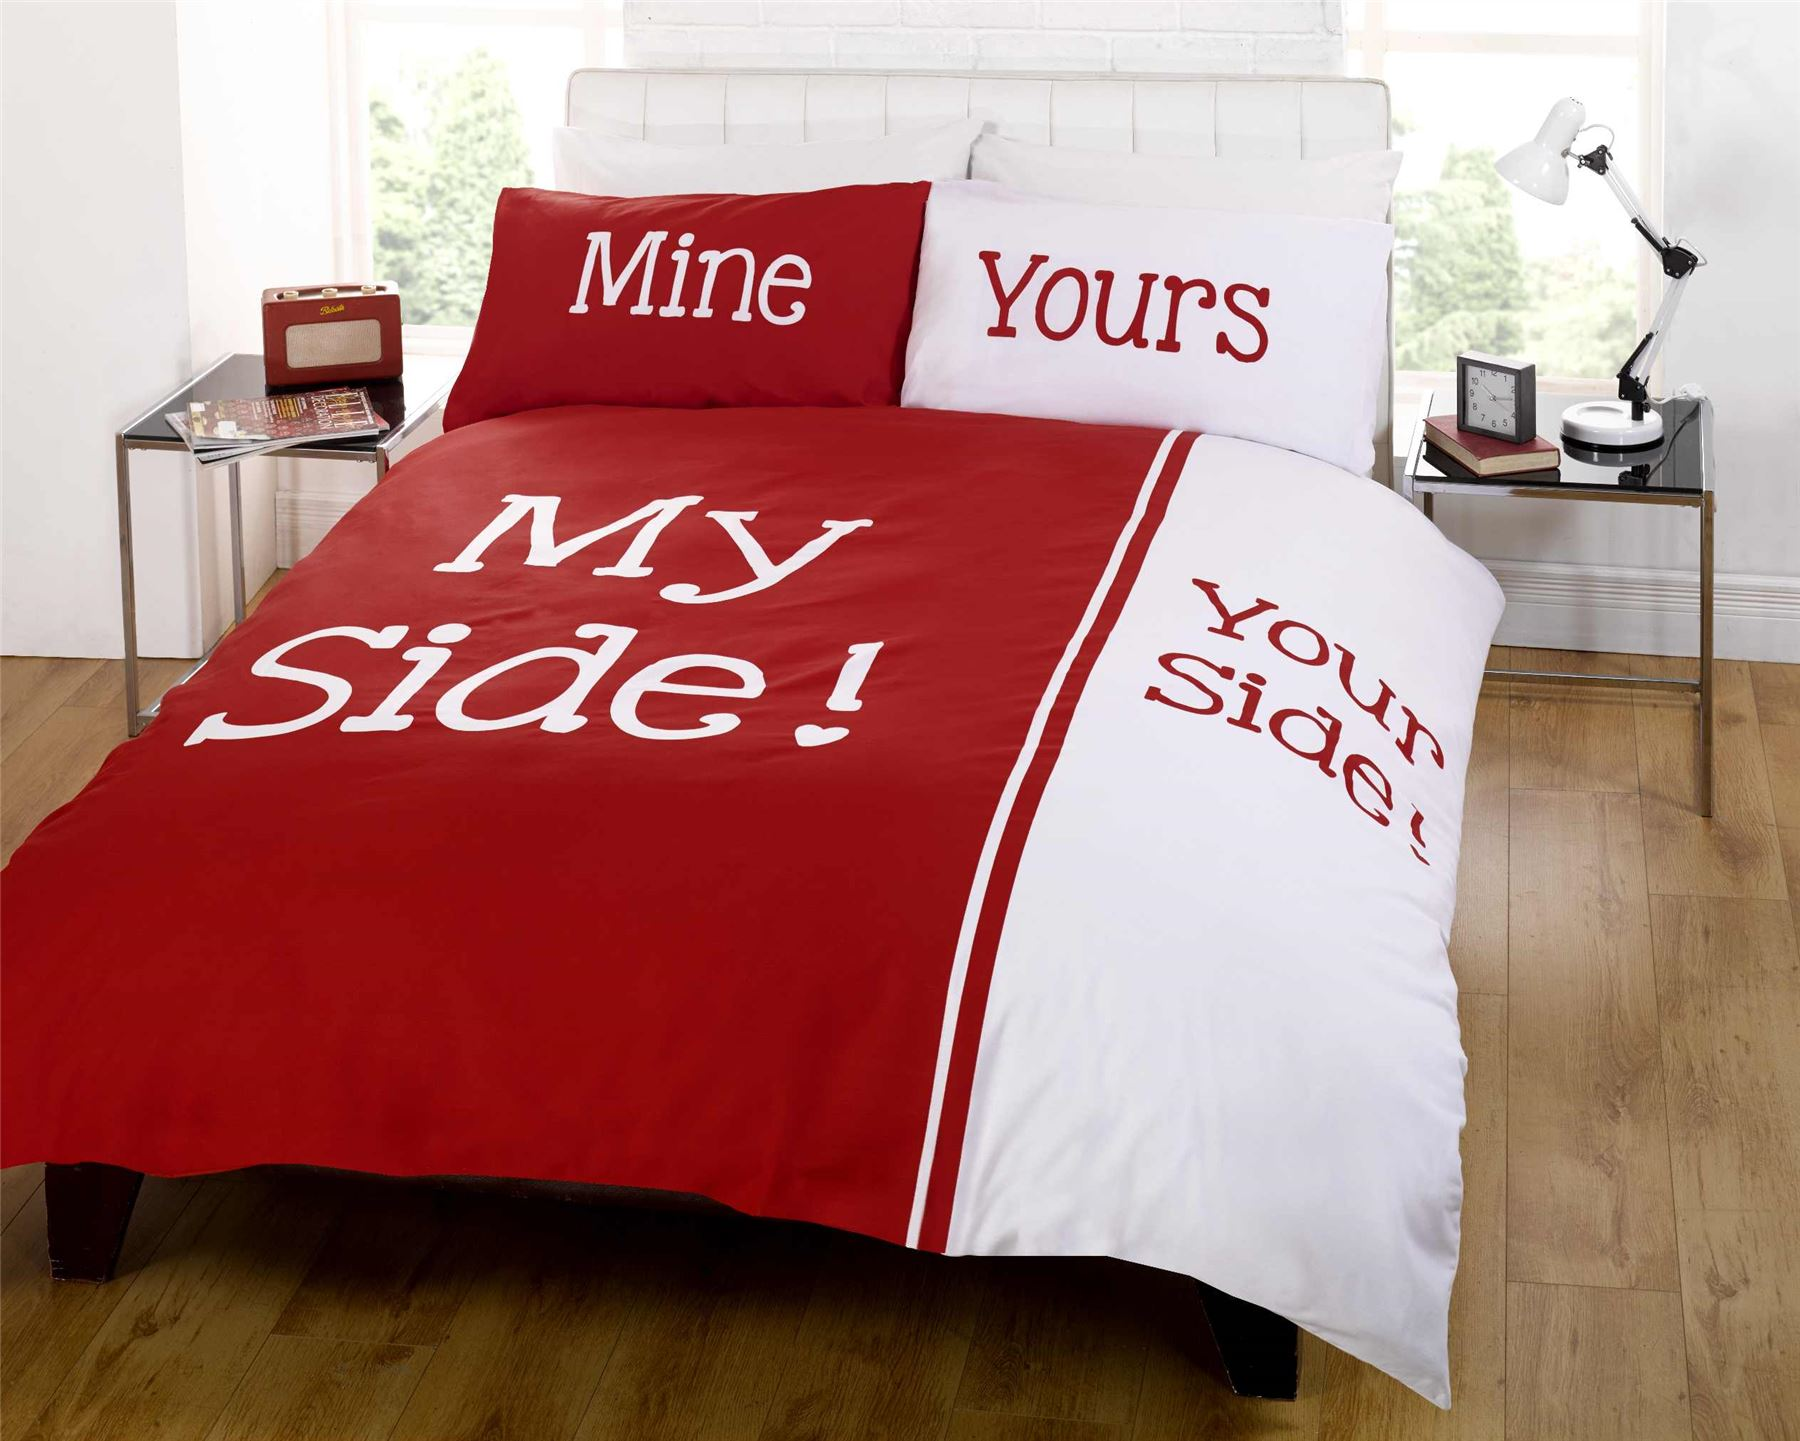 Rapport Panel Print Red My Side Your Side Couple Bedding Double King